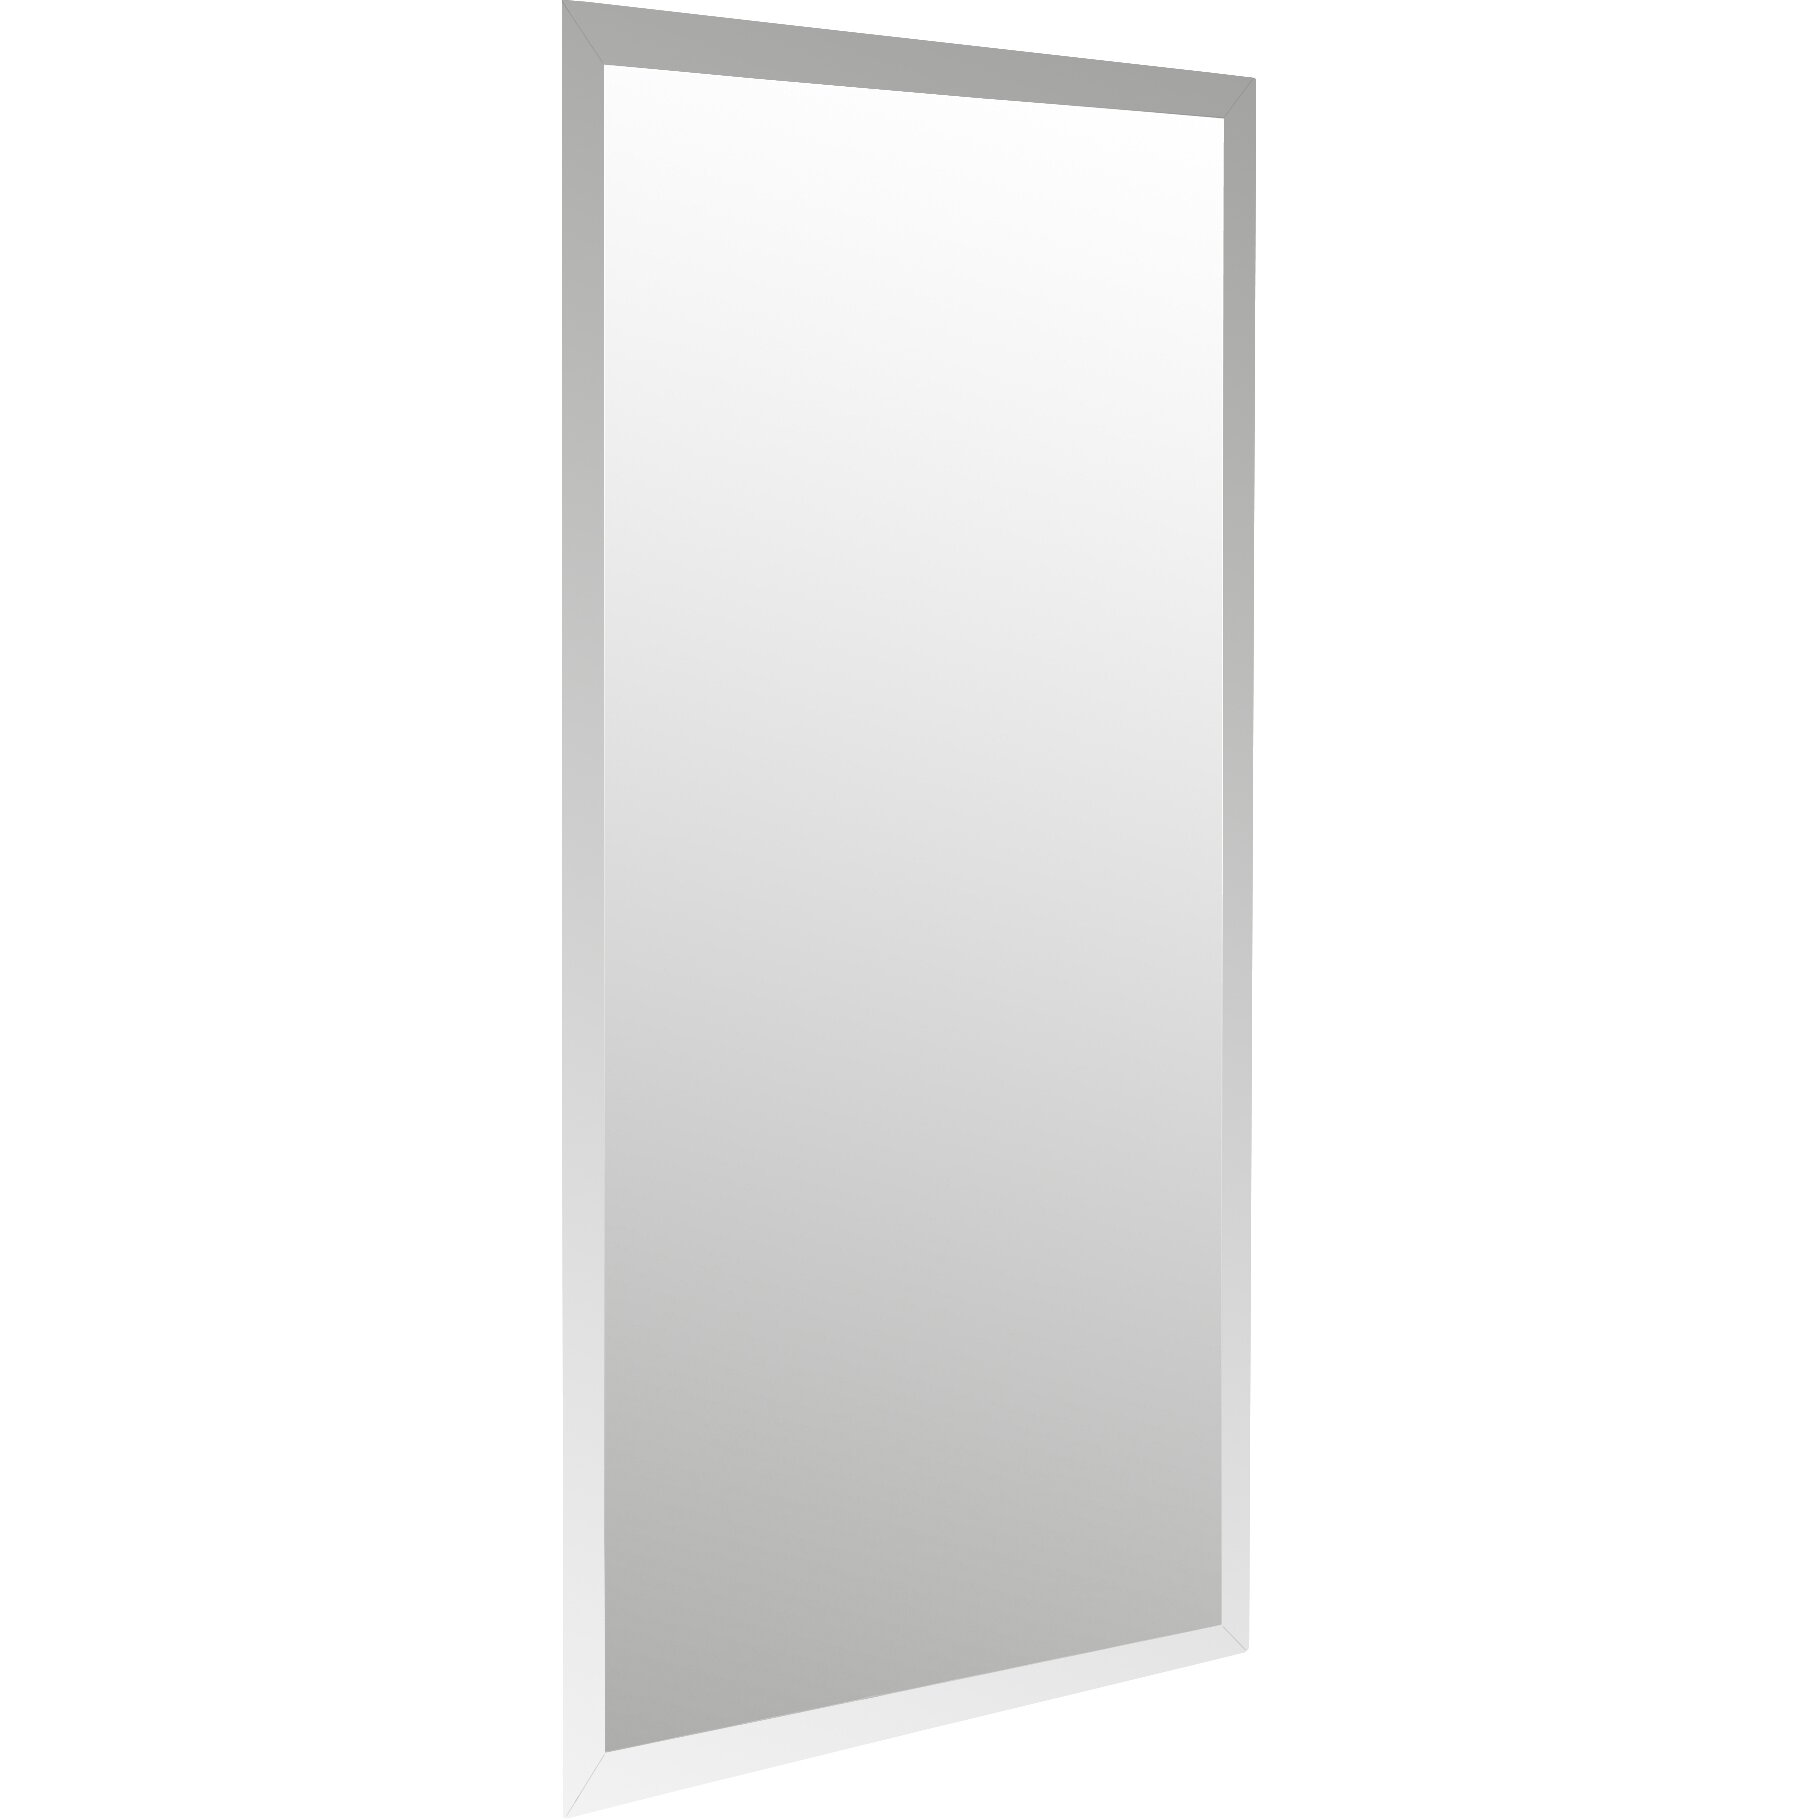 Frameless Bathroom Mirror Wade Logan Frameless Wall Mirror Reviews Wayfair